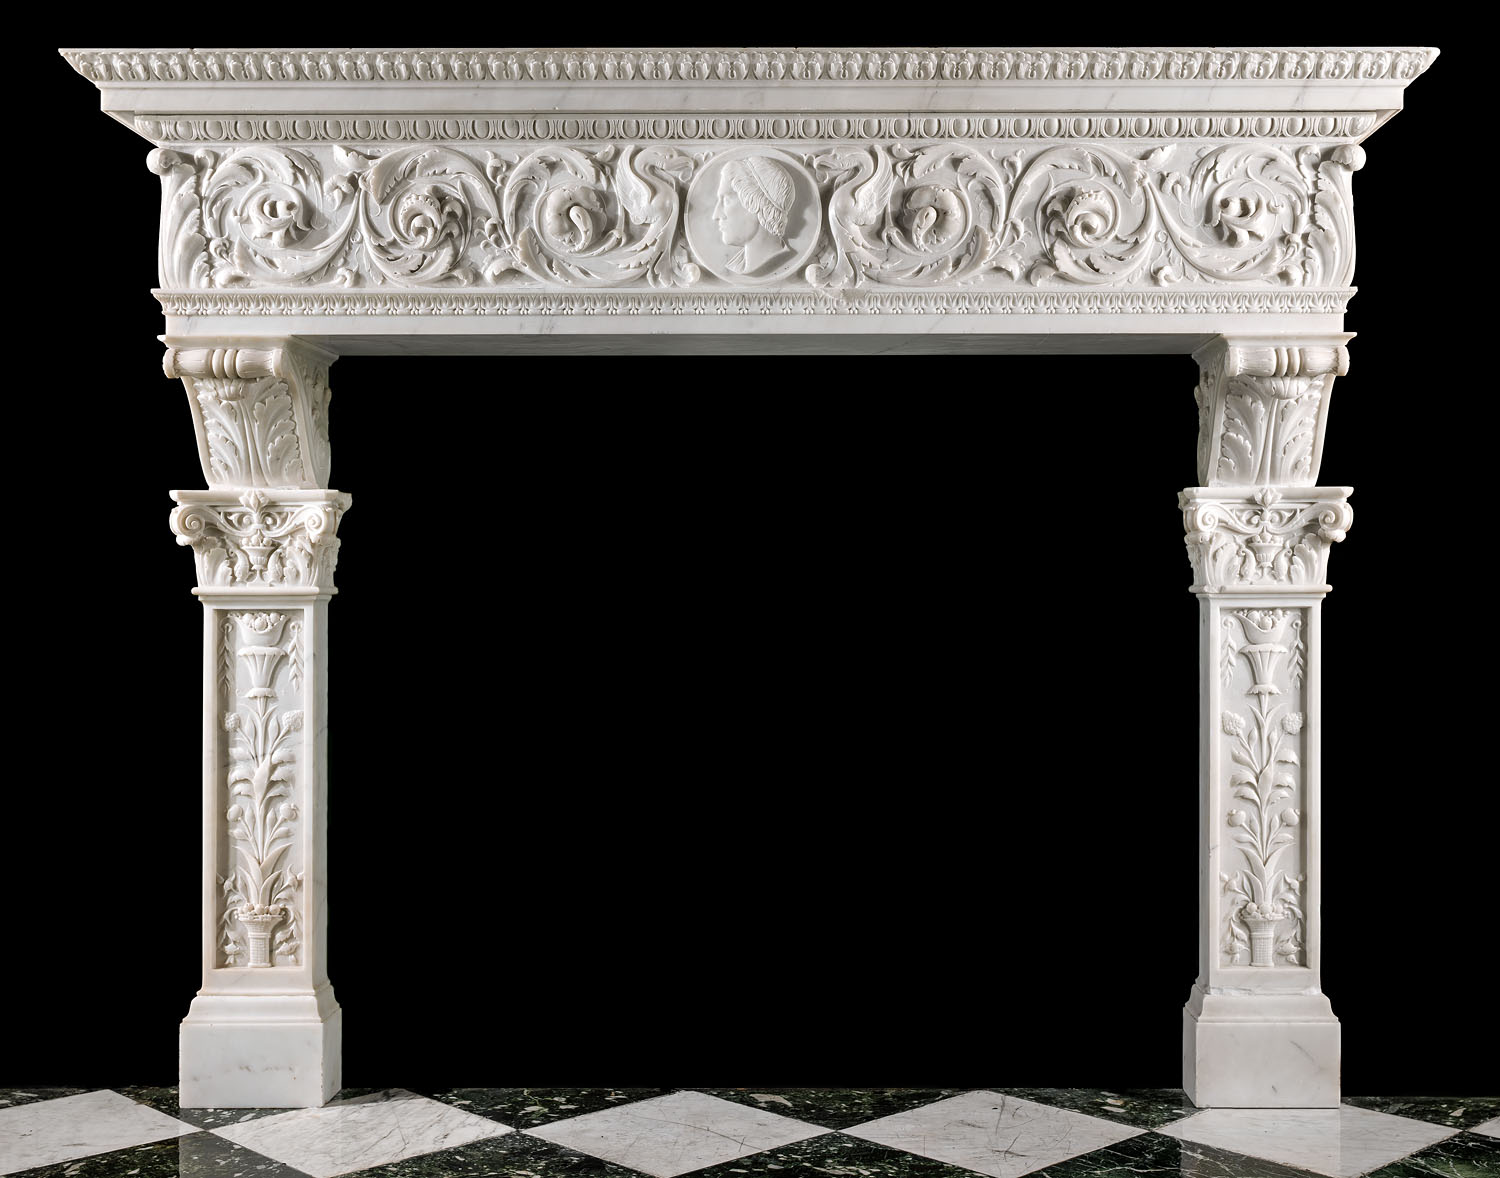 An Italian Palazzo Renaissance manner marble Chimneypiece.